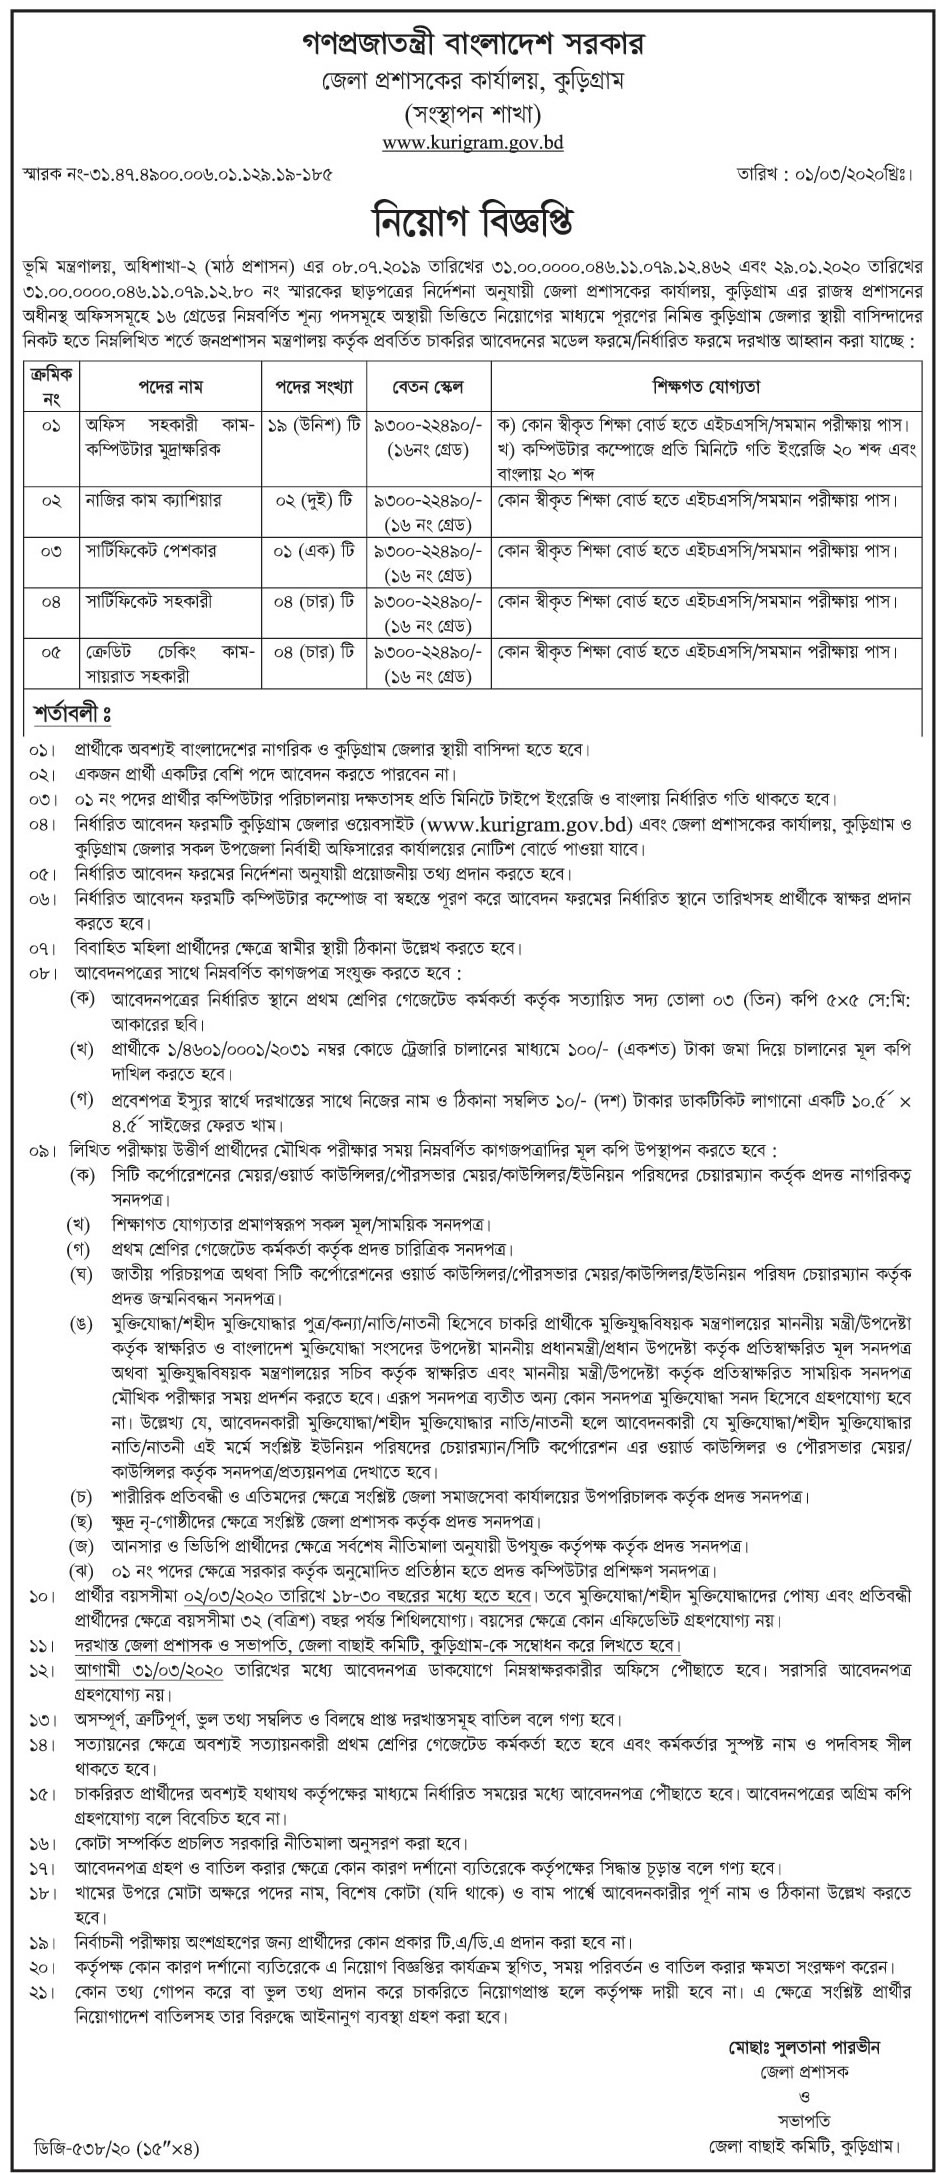 Ministry of Land Job Circular 2020 - minland.org.bd